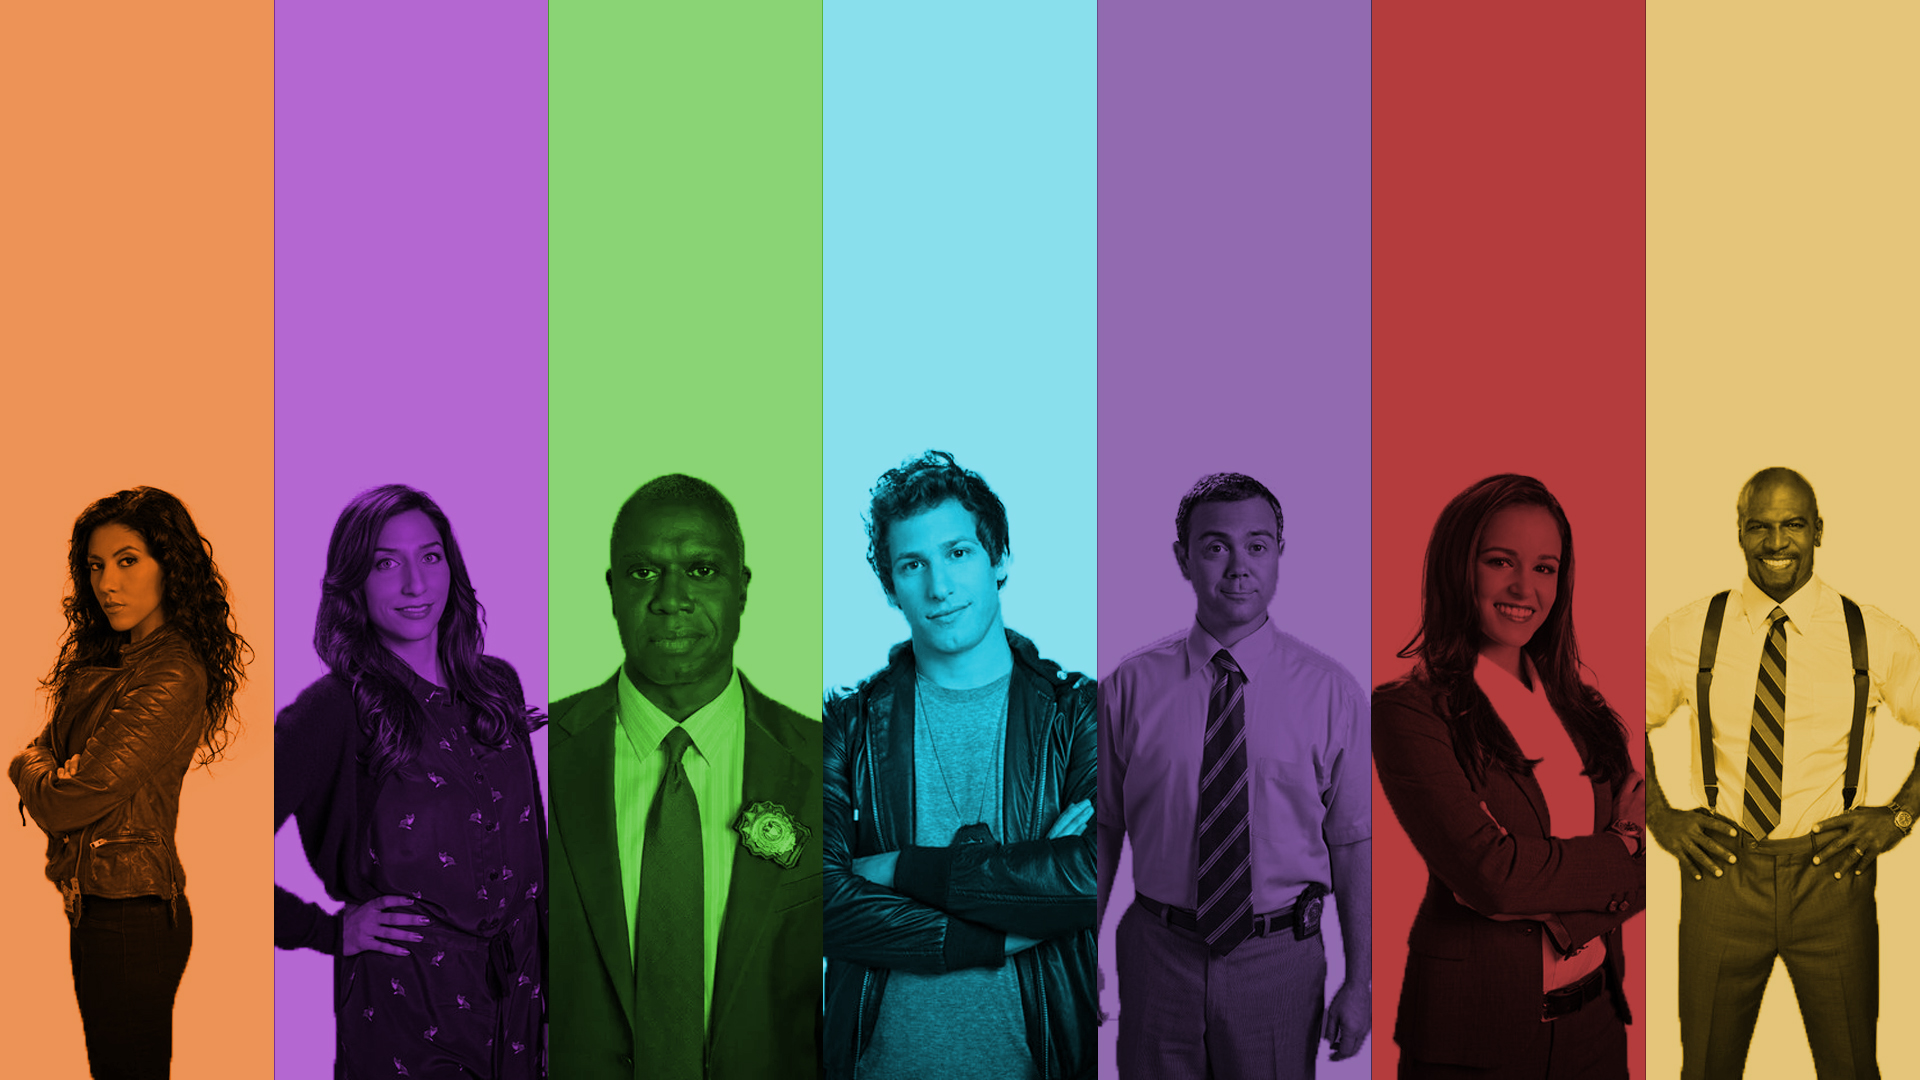 Made a Brooklyn Nine Nine wallpaper dedicated to my favourite show 1920x1080